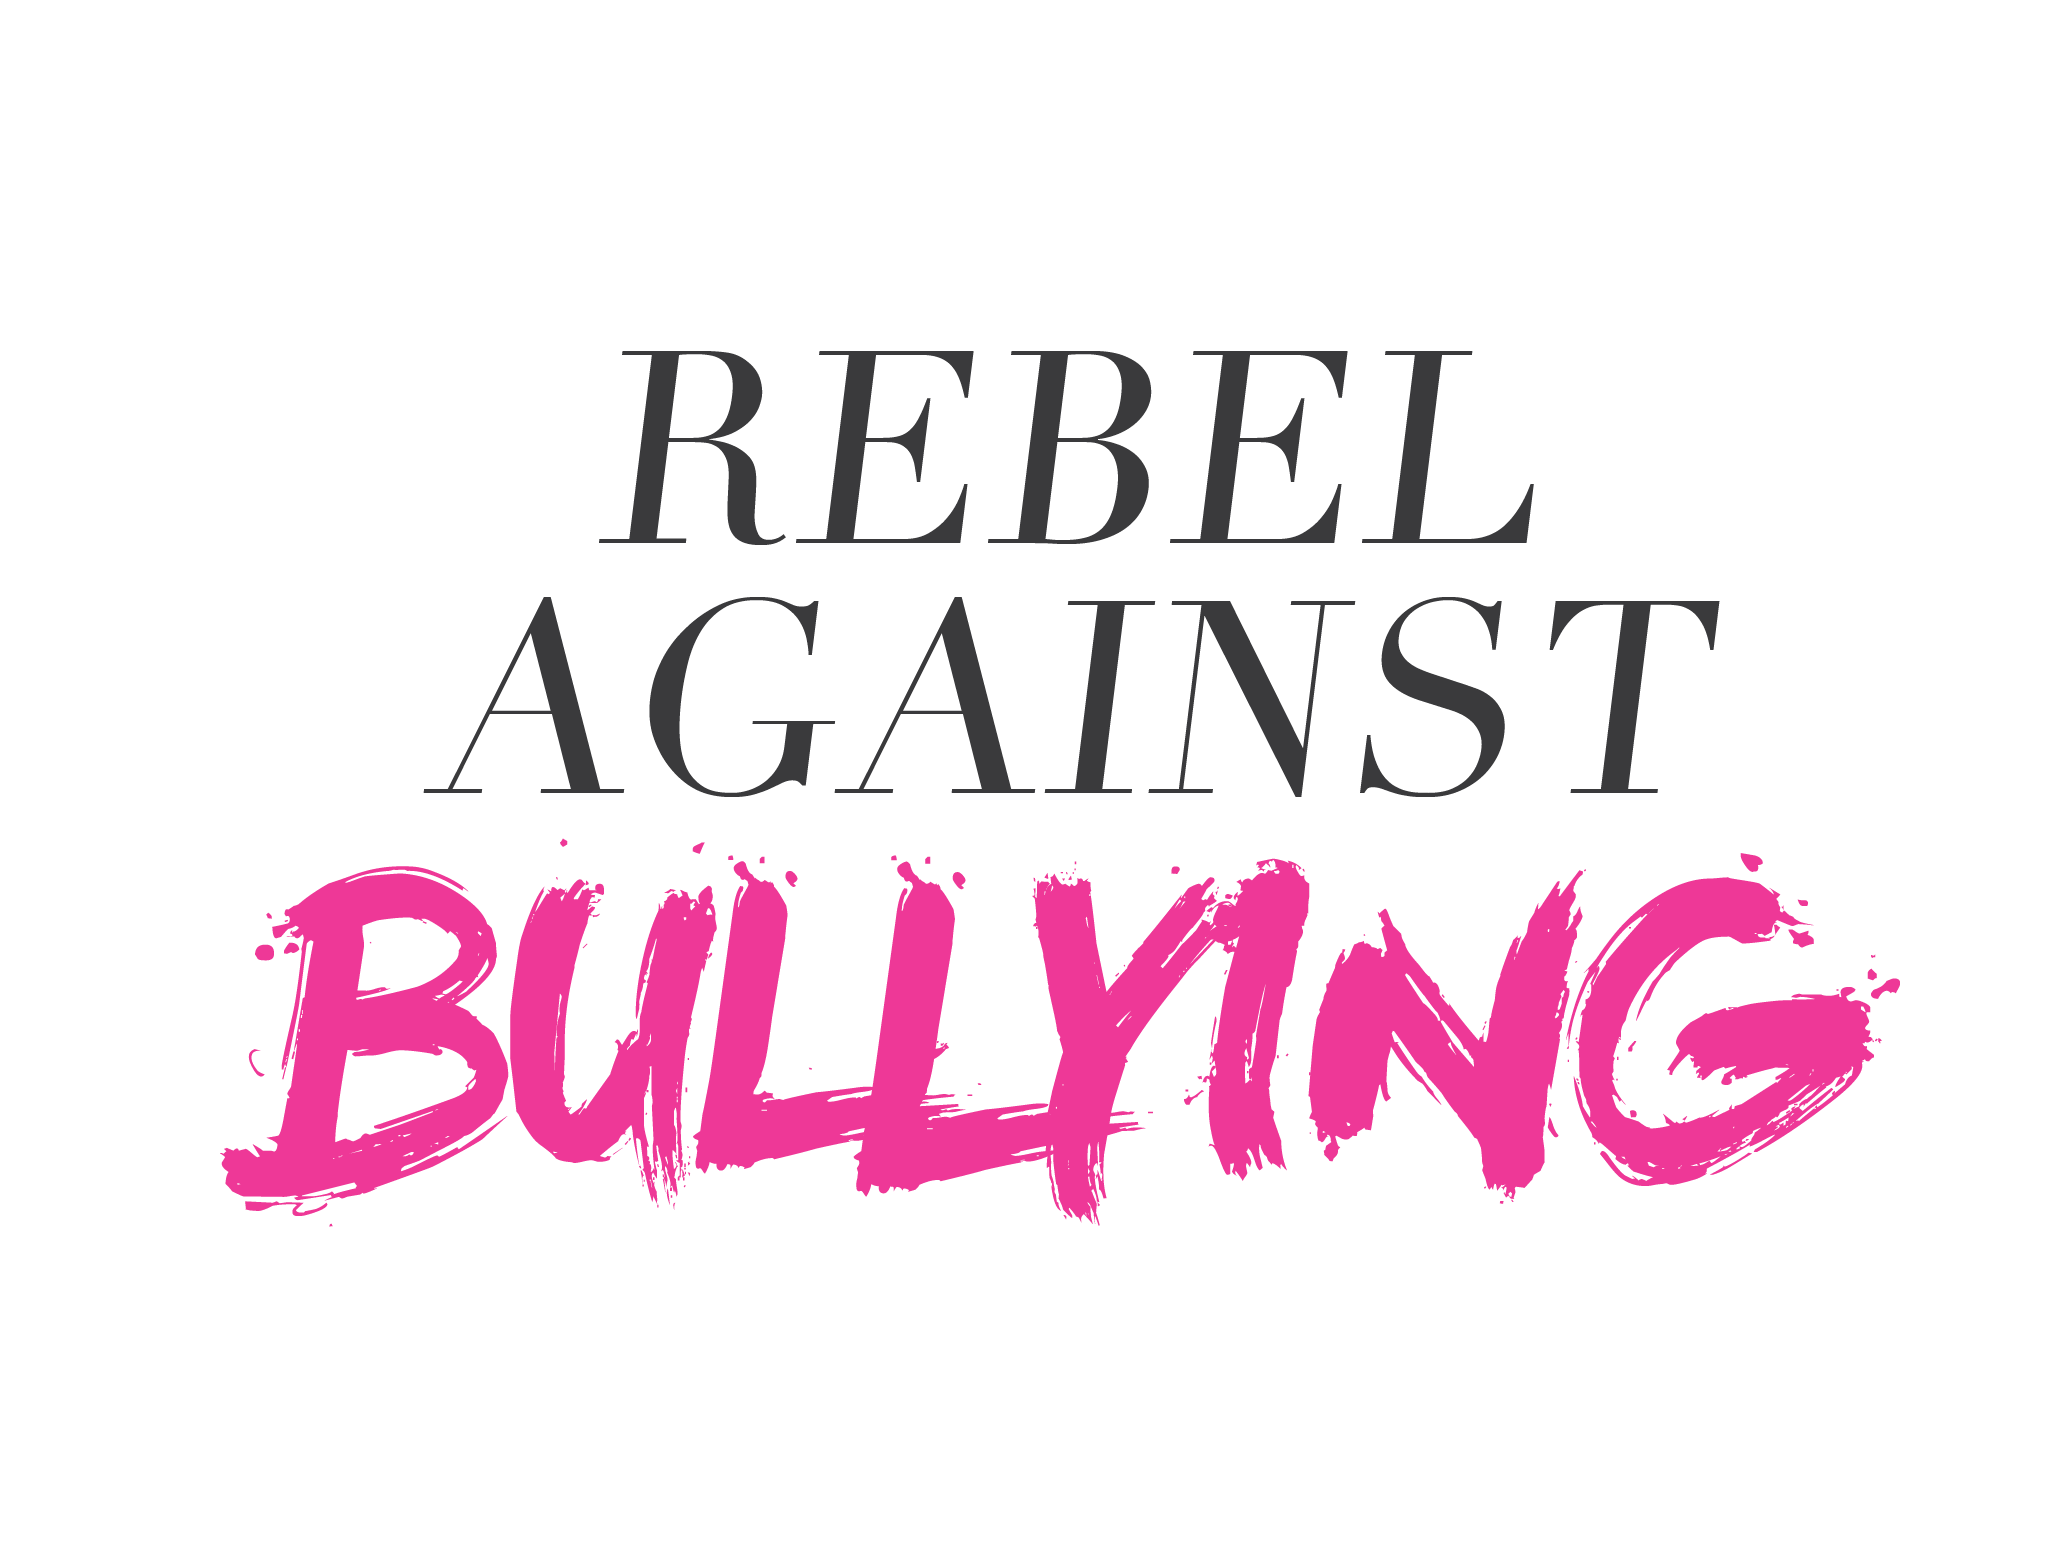 Rebel Against Bullying